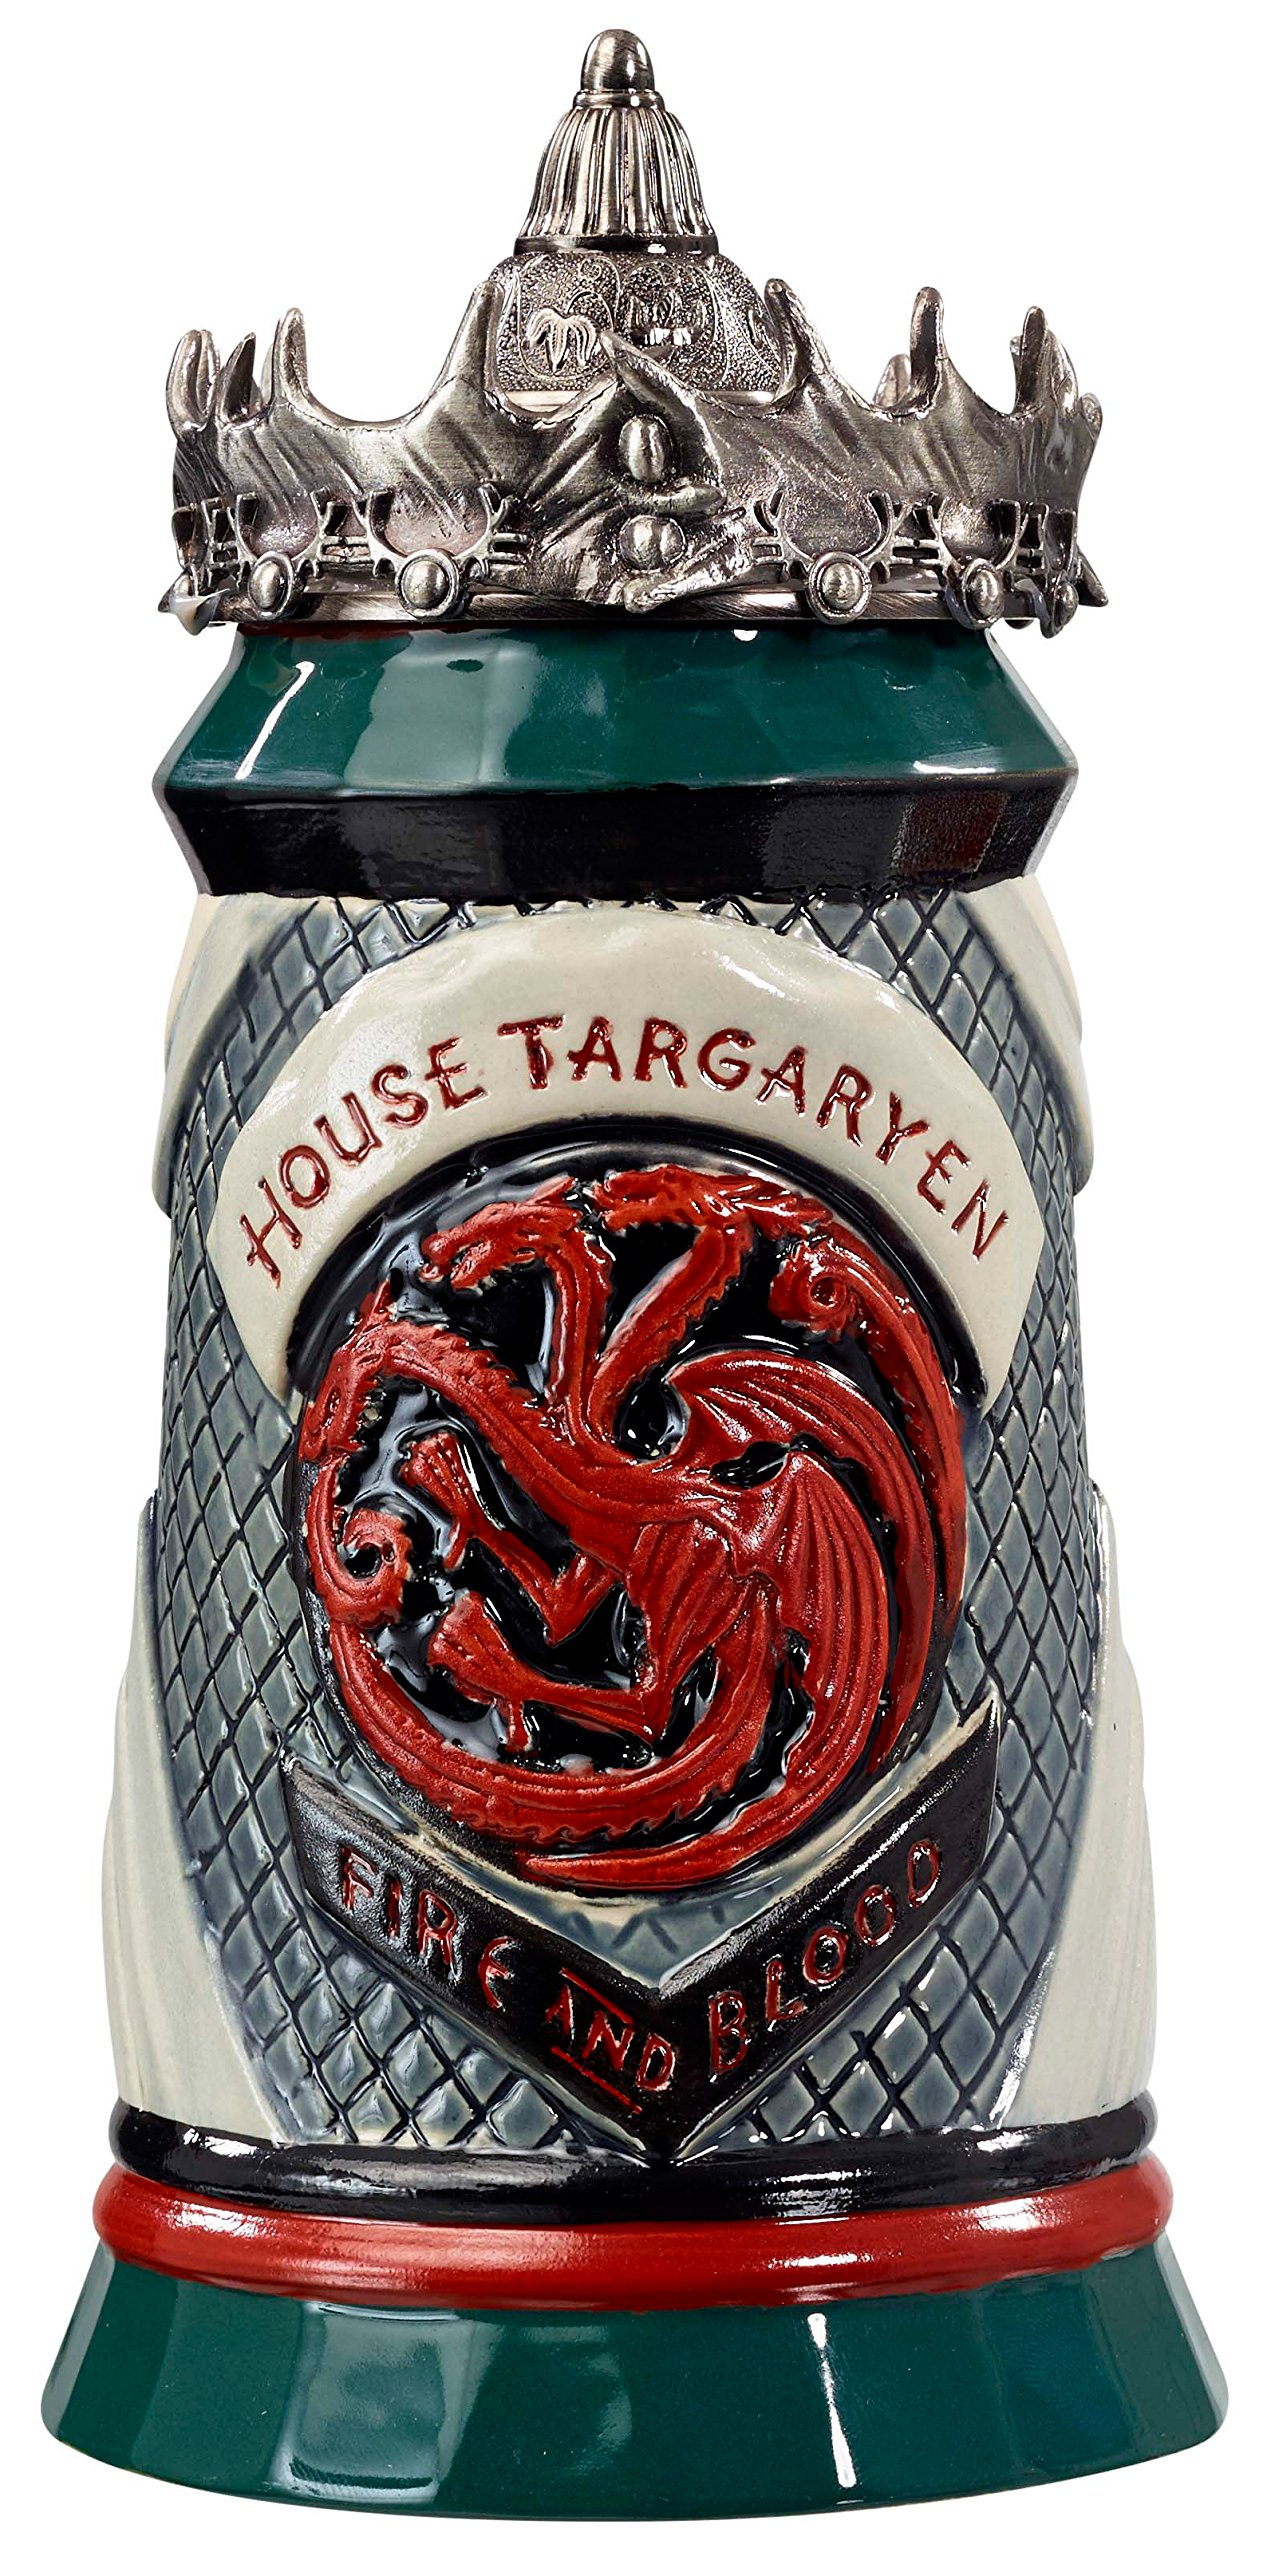 Game of Thrones House Targaryen Stein - 22 Oz Ceramic Base with Pewter Baratheon Crown Top